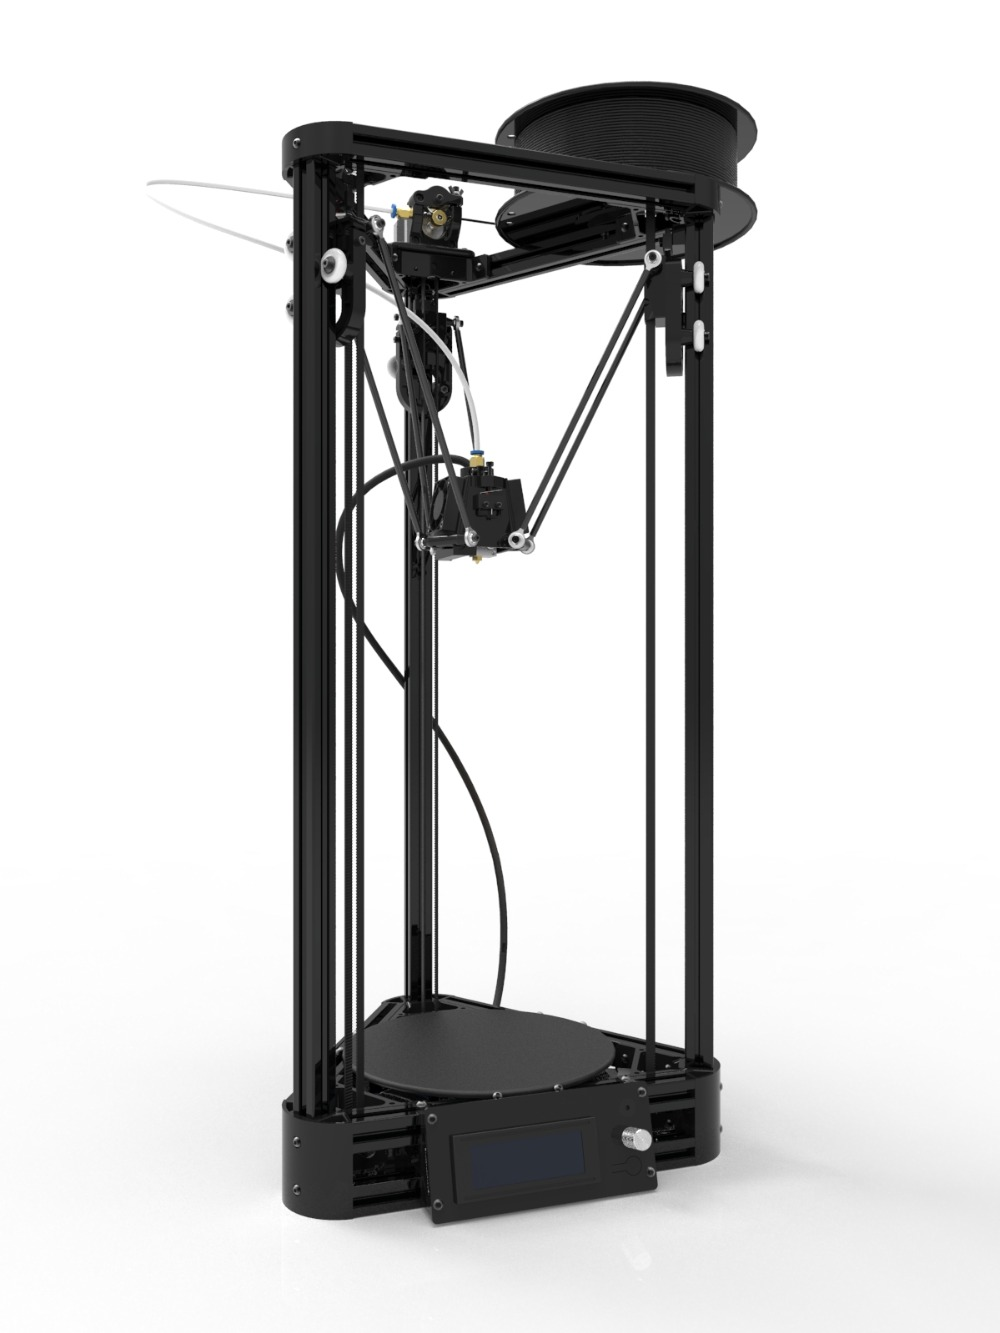 Injection Model Kossel 3D Printer 3D Auto Level Delta Rostock Pulley 3D Printer DIY kit Print